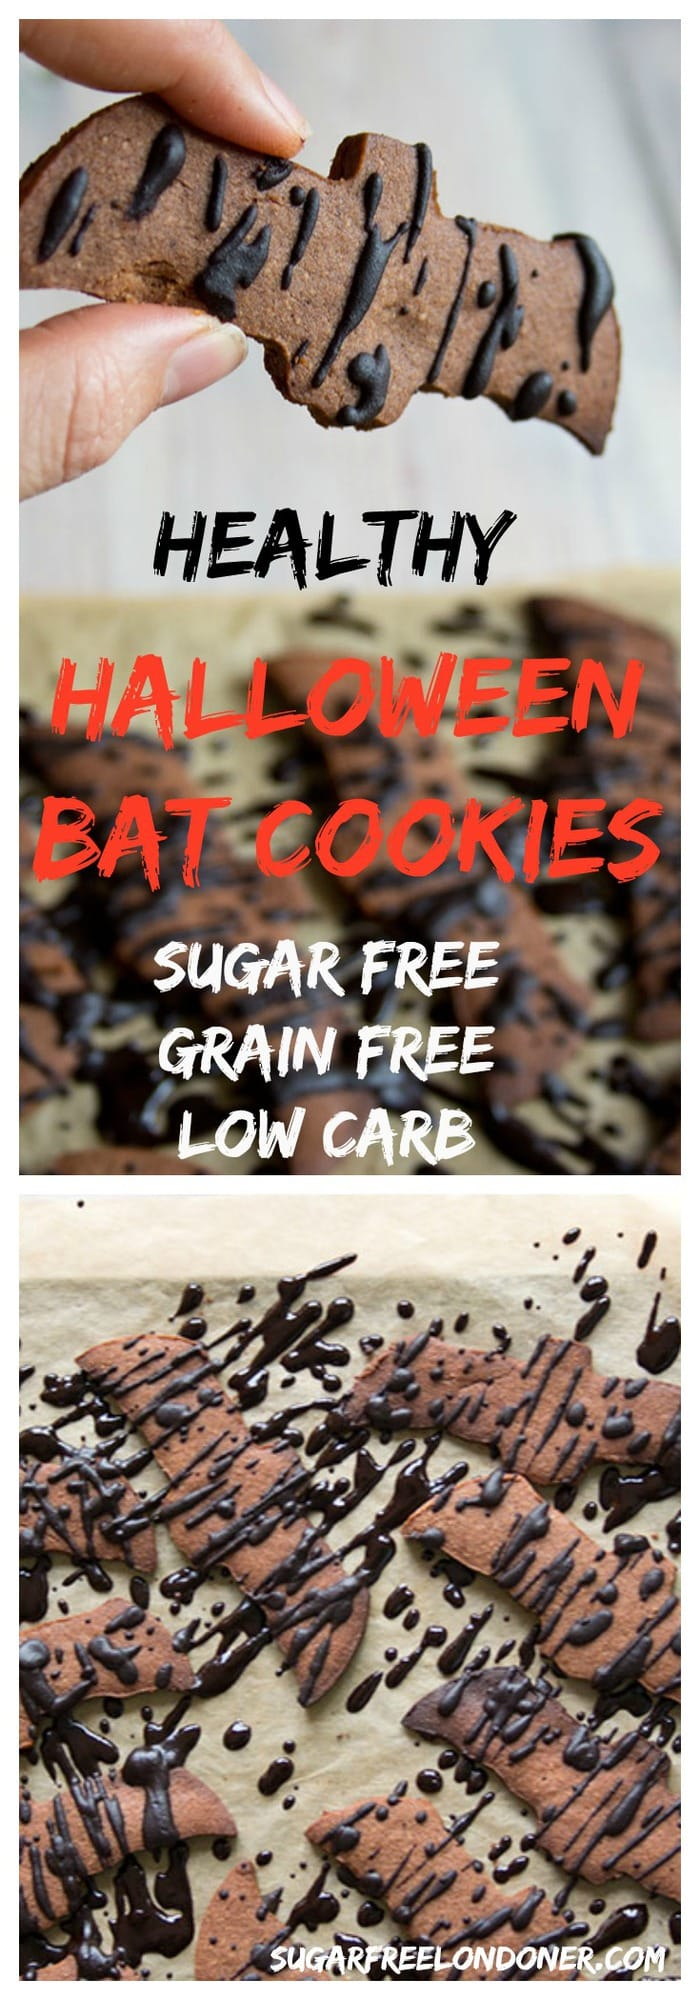 These easy Halloween cookies are sugar free, gluten free and drizzled with sugar free chocolate. A delicious, totally guilt-free cut-out cookie recipe that's perfect for low carb and keto diets and suitable for diabetics. #halloweencookies #halloweentreats